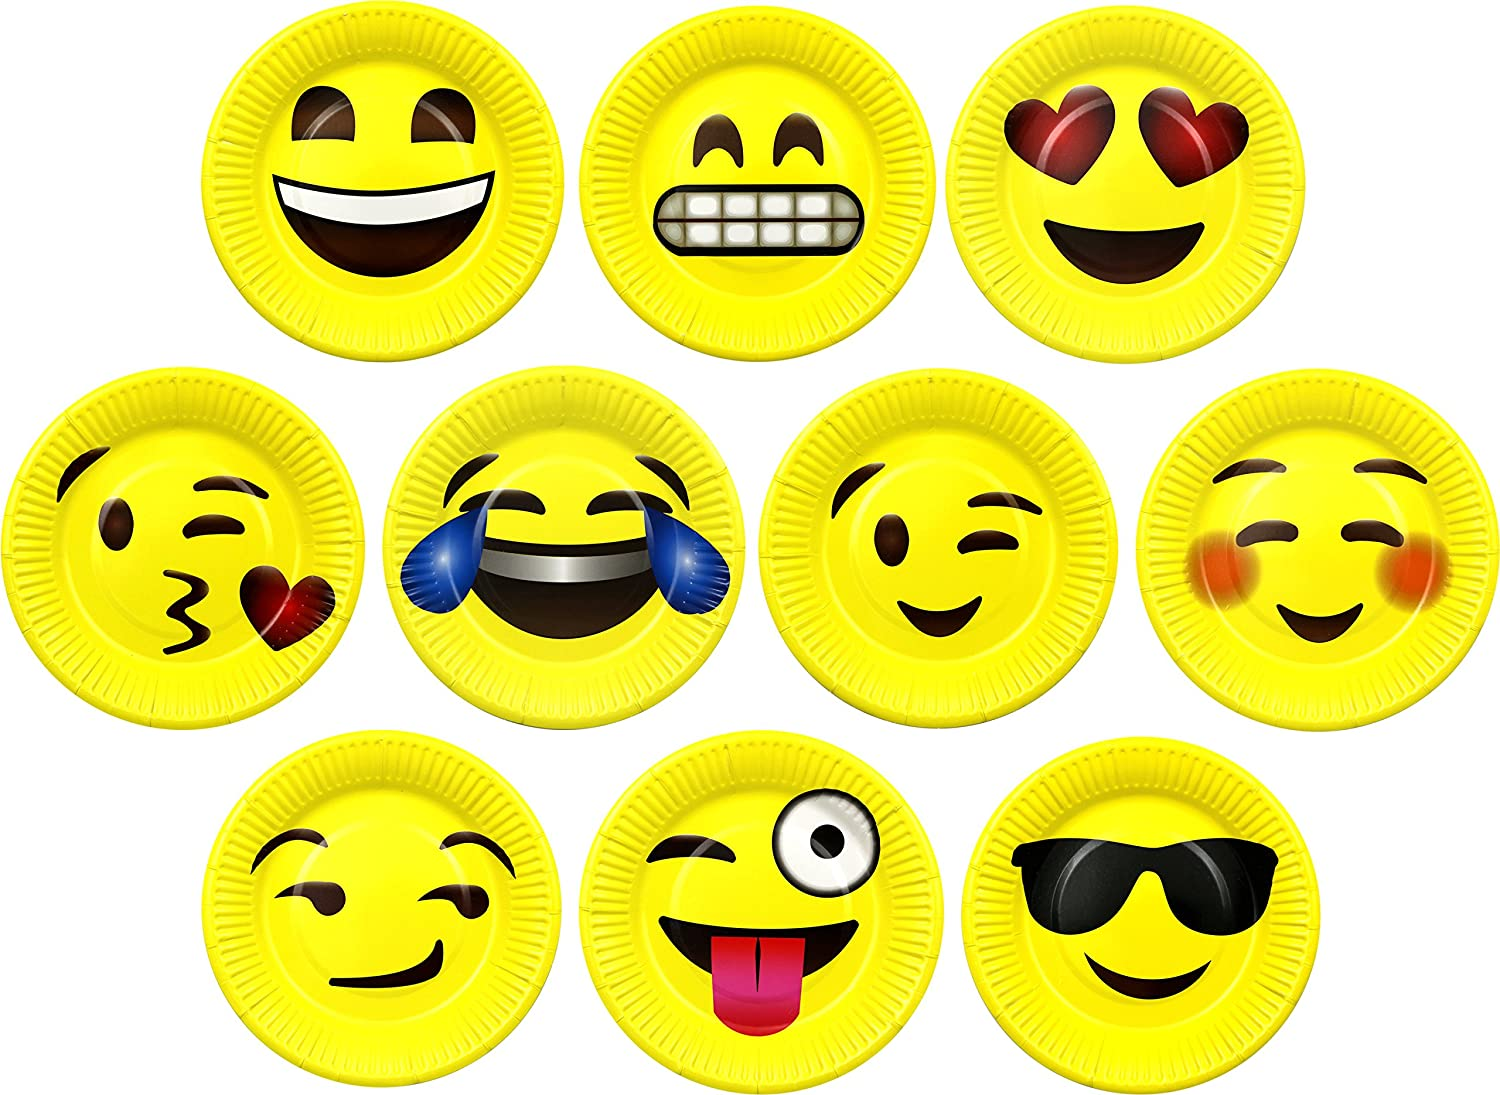 Bulk 50 Pack of Mixed Expressions Emojis